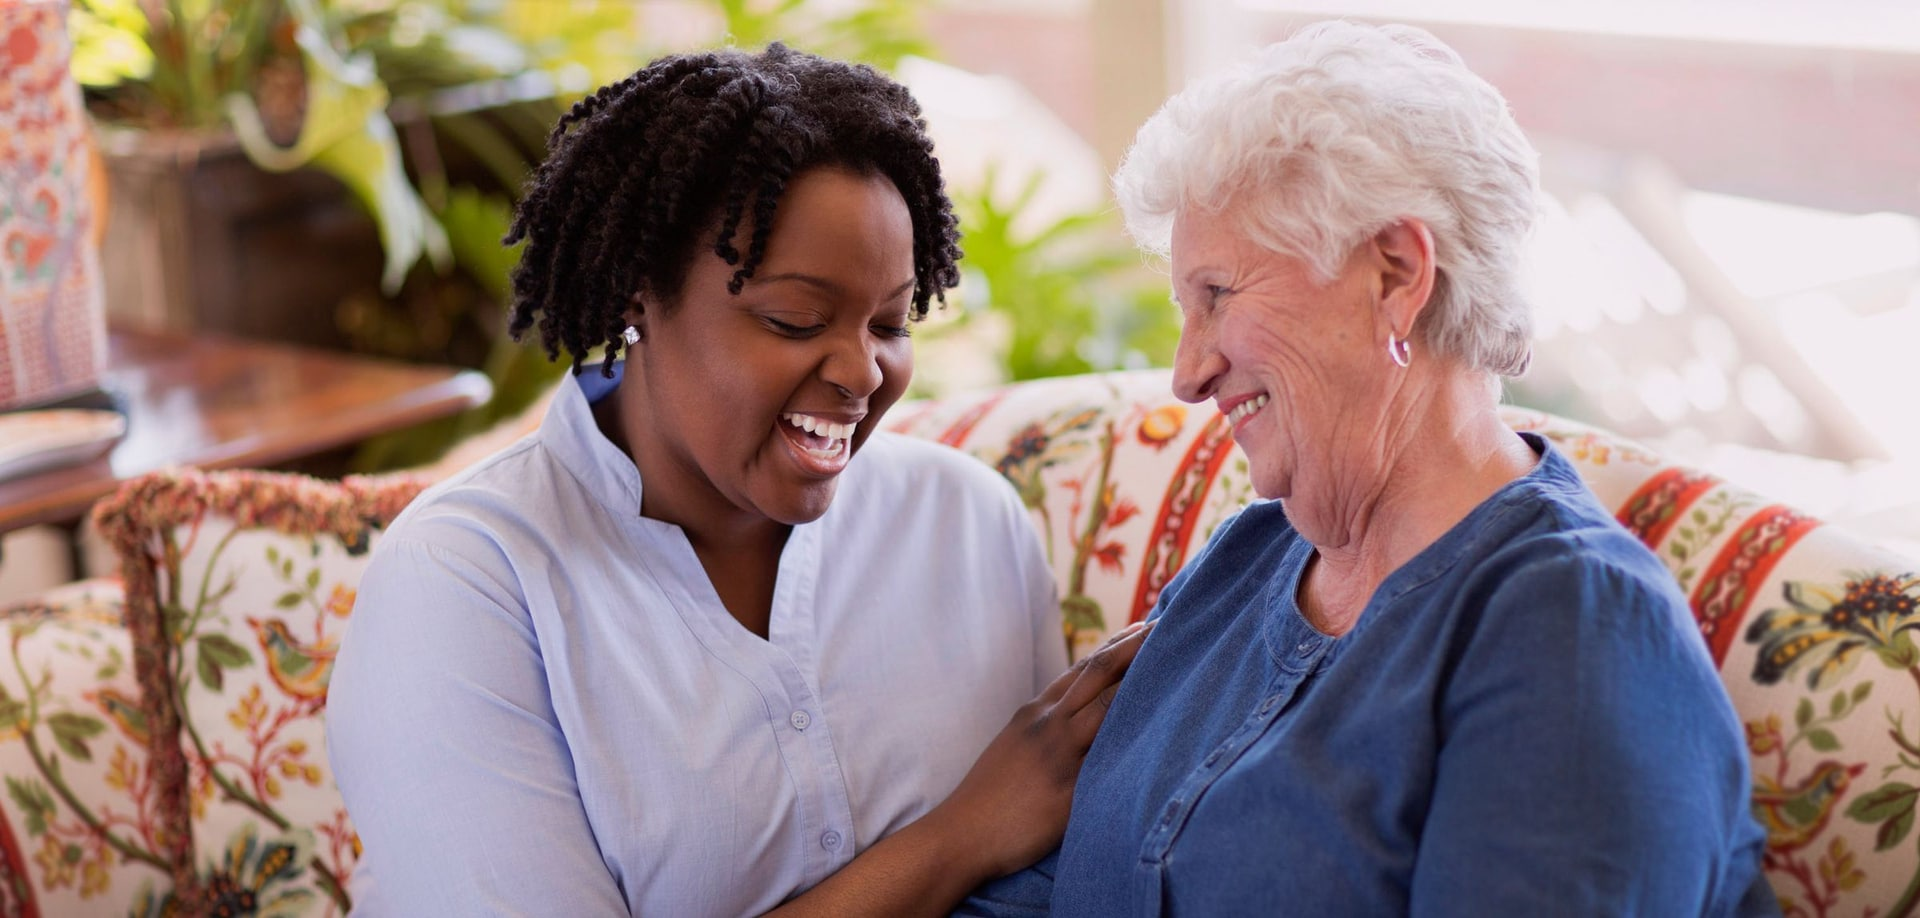 Elderly Care Tips Article Image